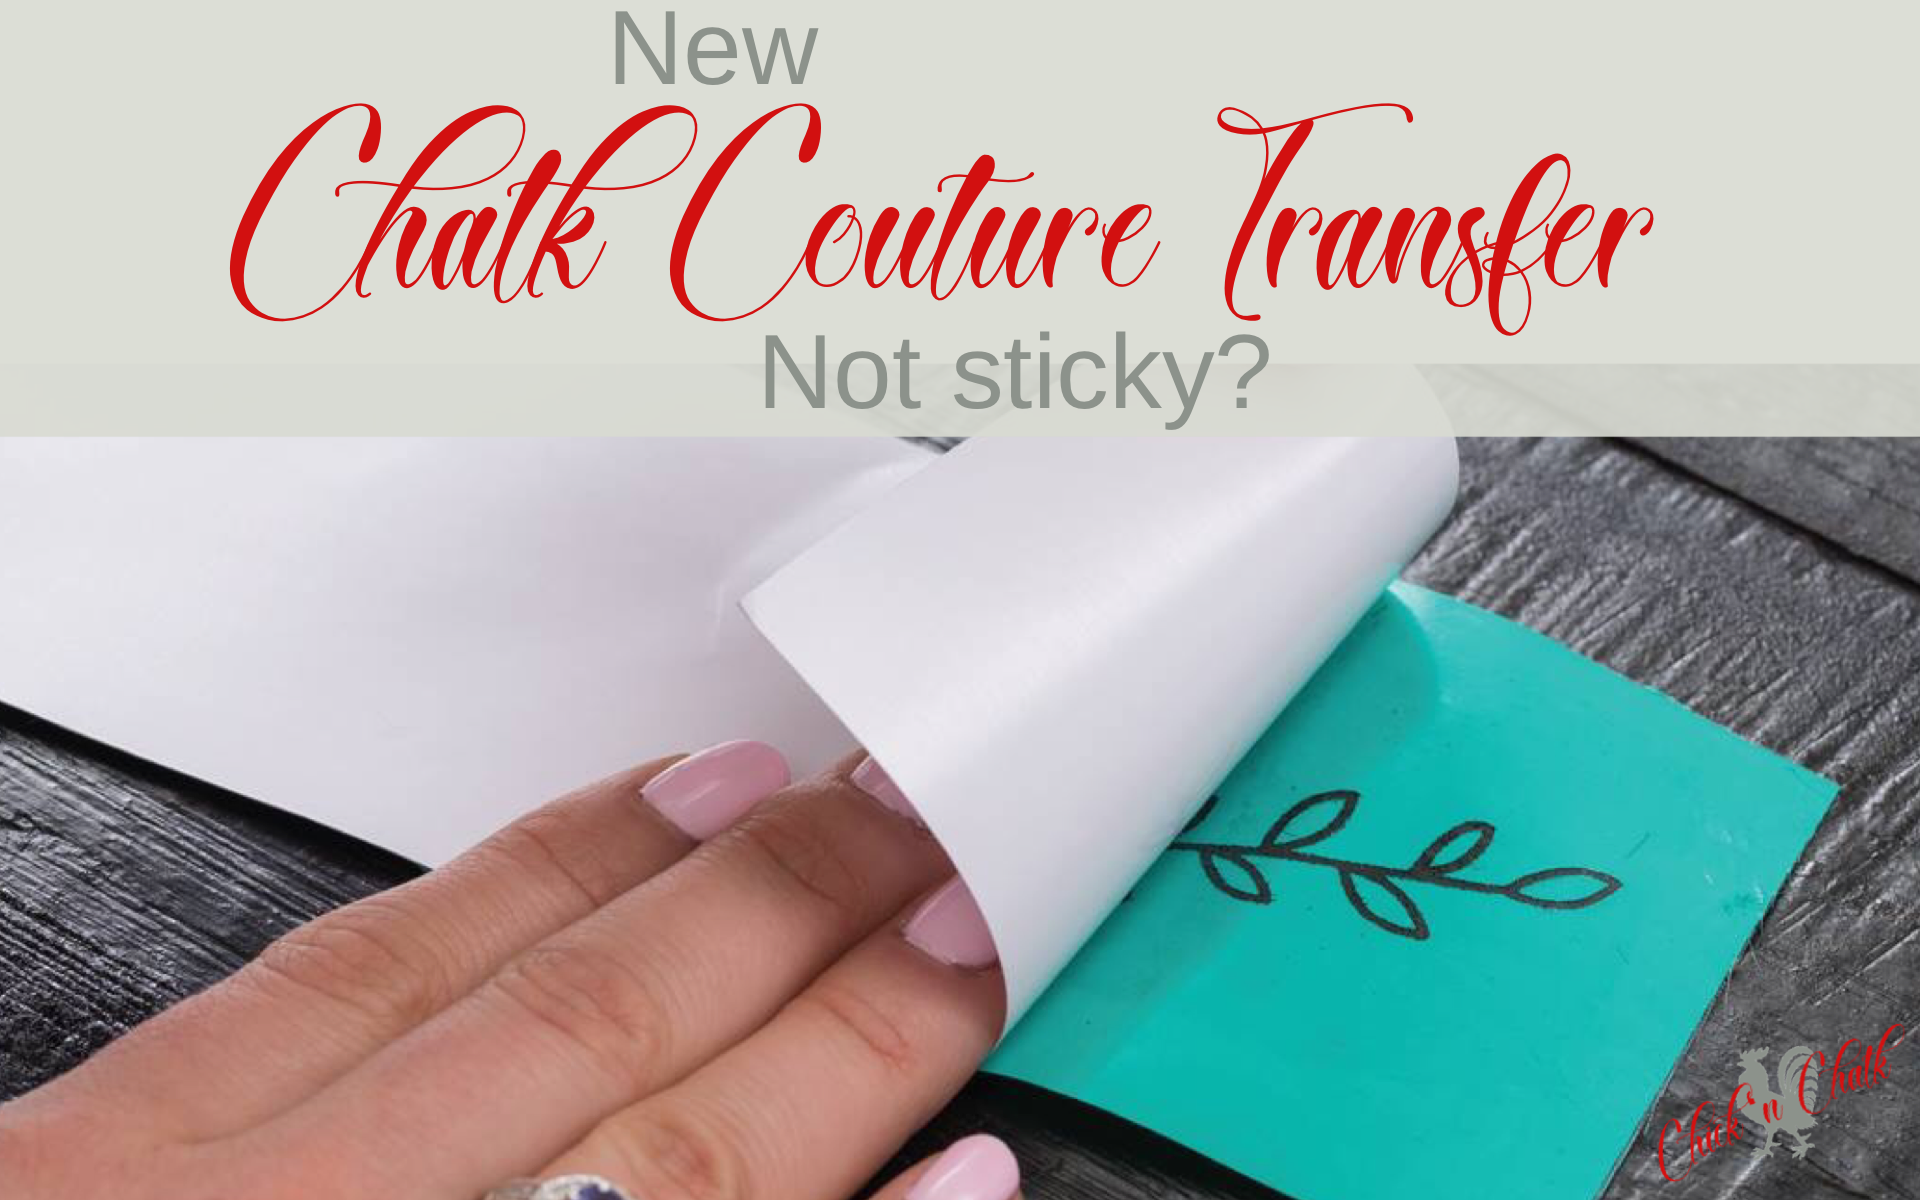 new chalk couture transfer not sticky